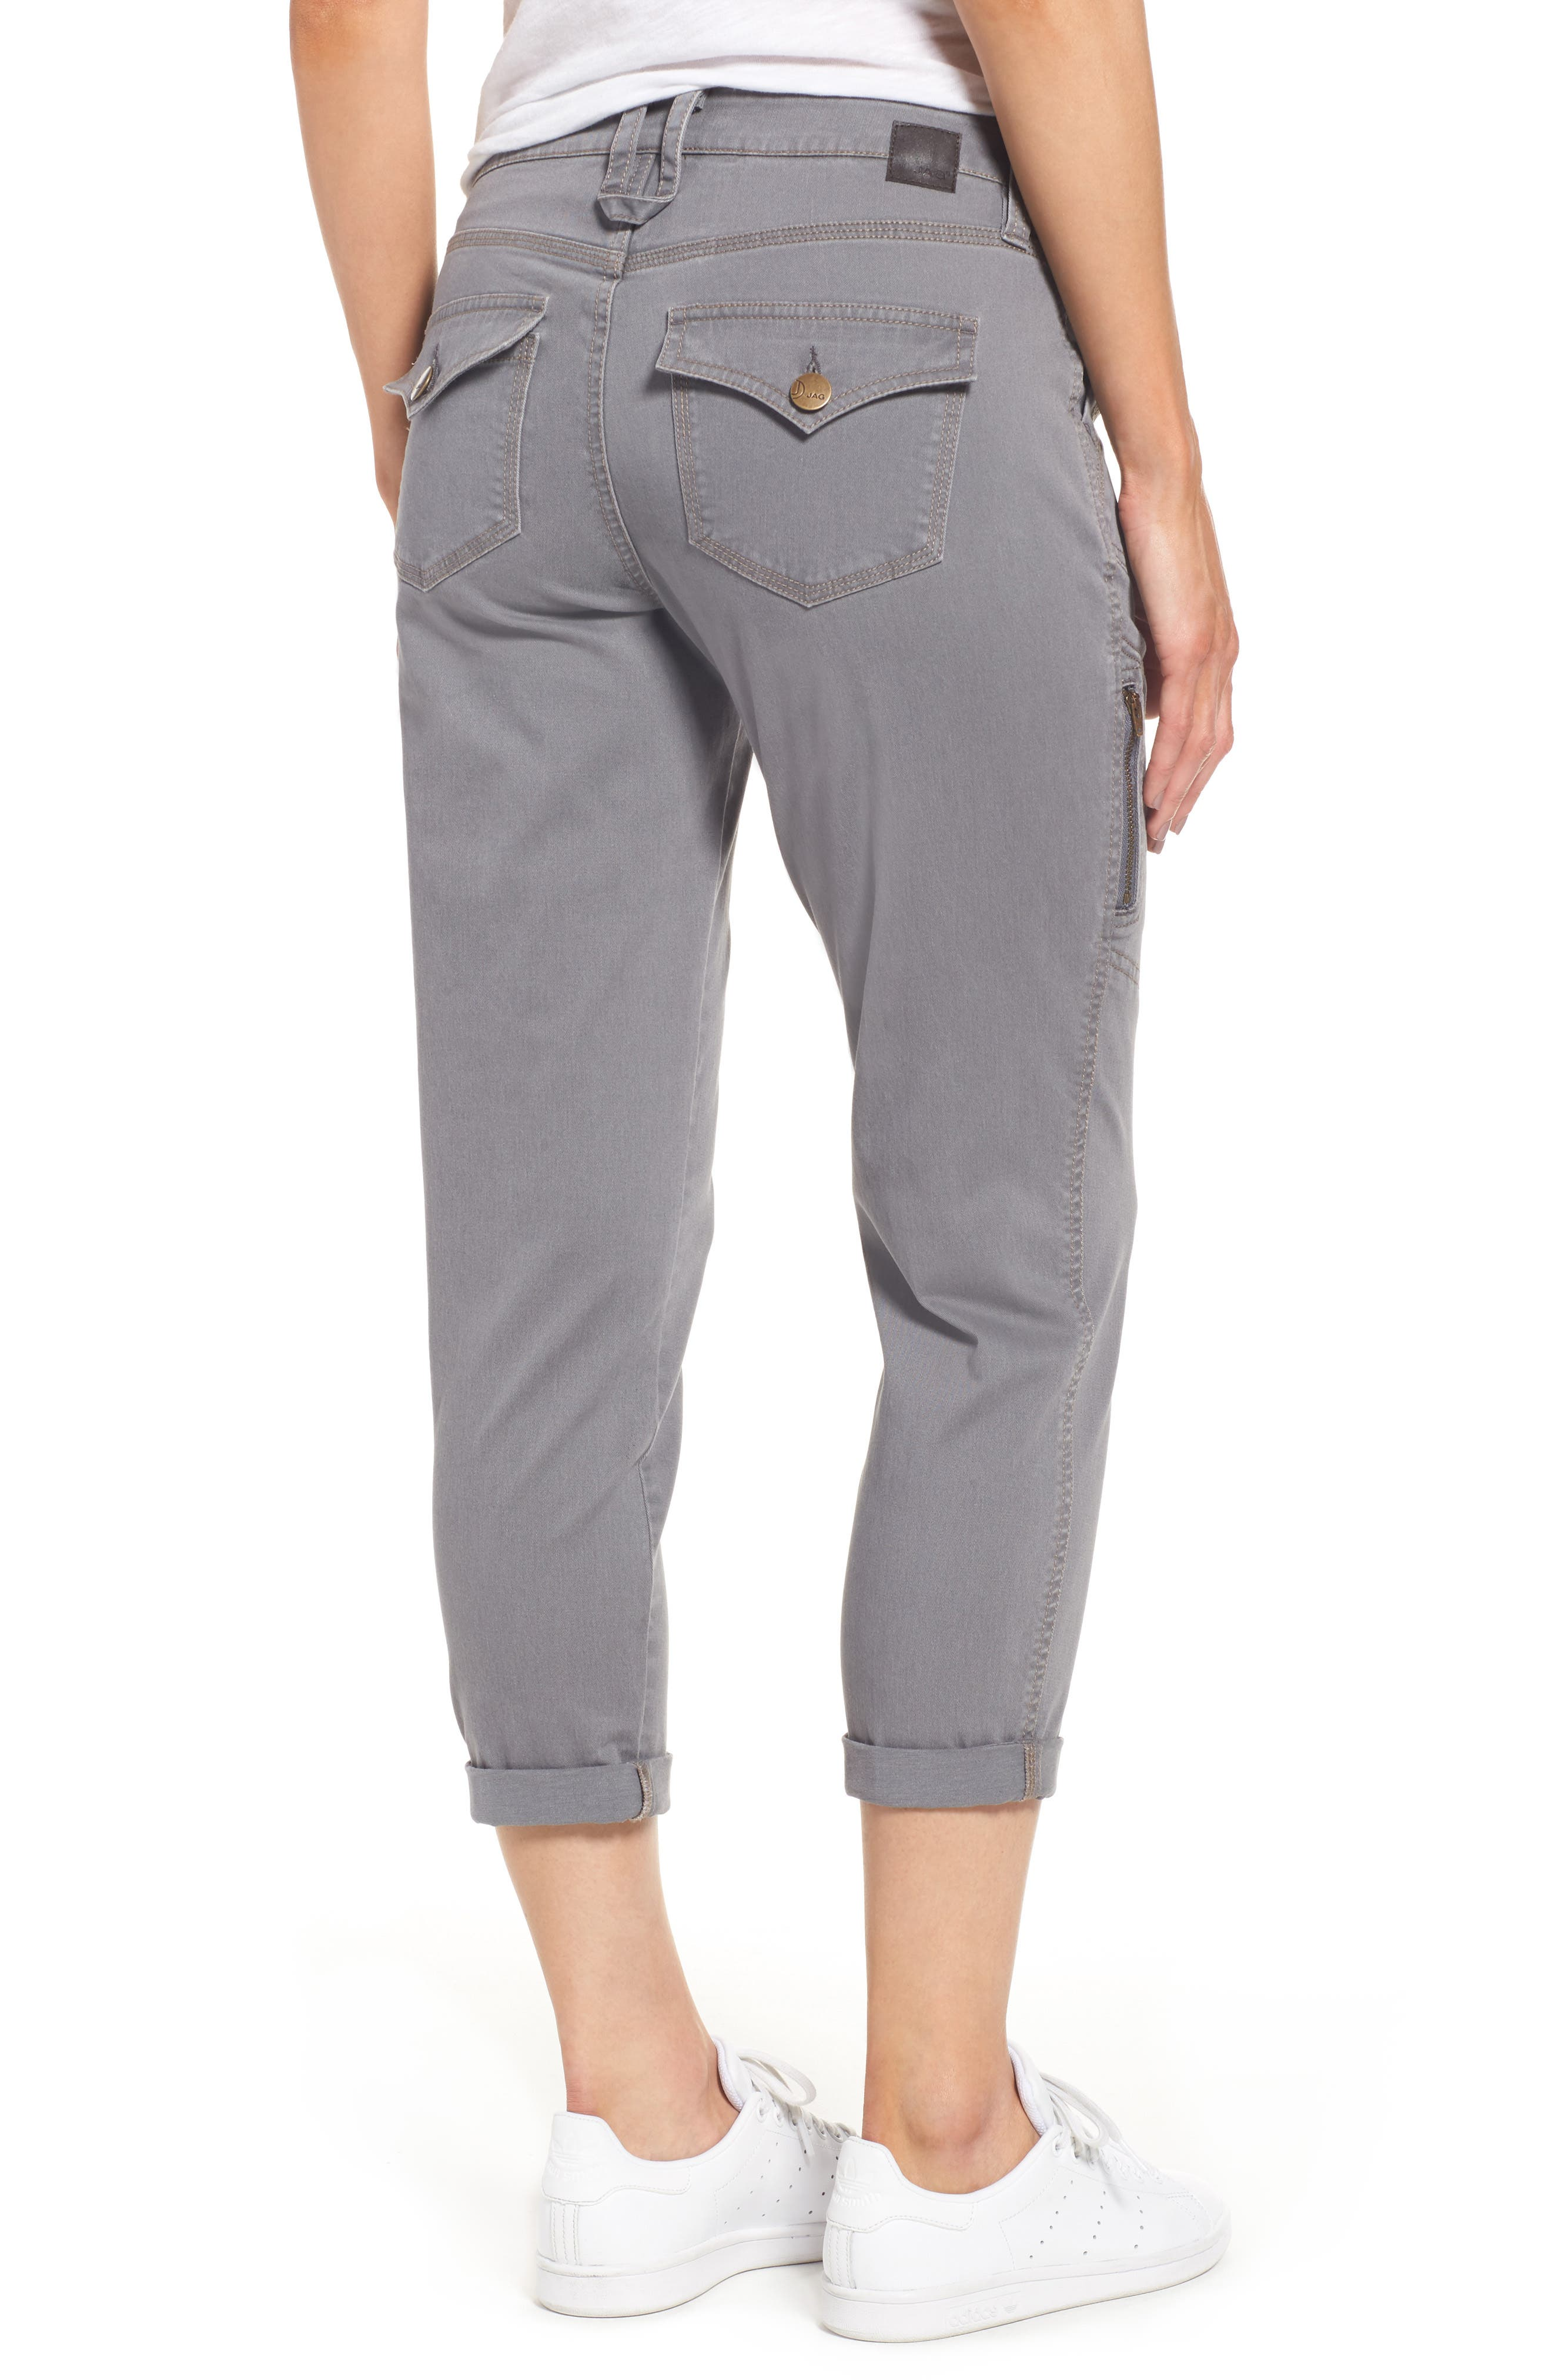 Gable Stretch Twill Utility Pants,                             Alternate thumbnail 8, color,